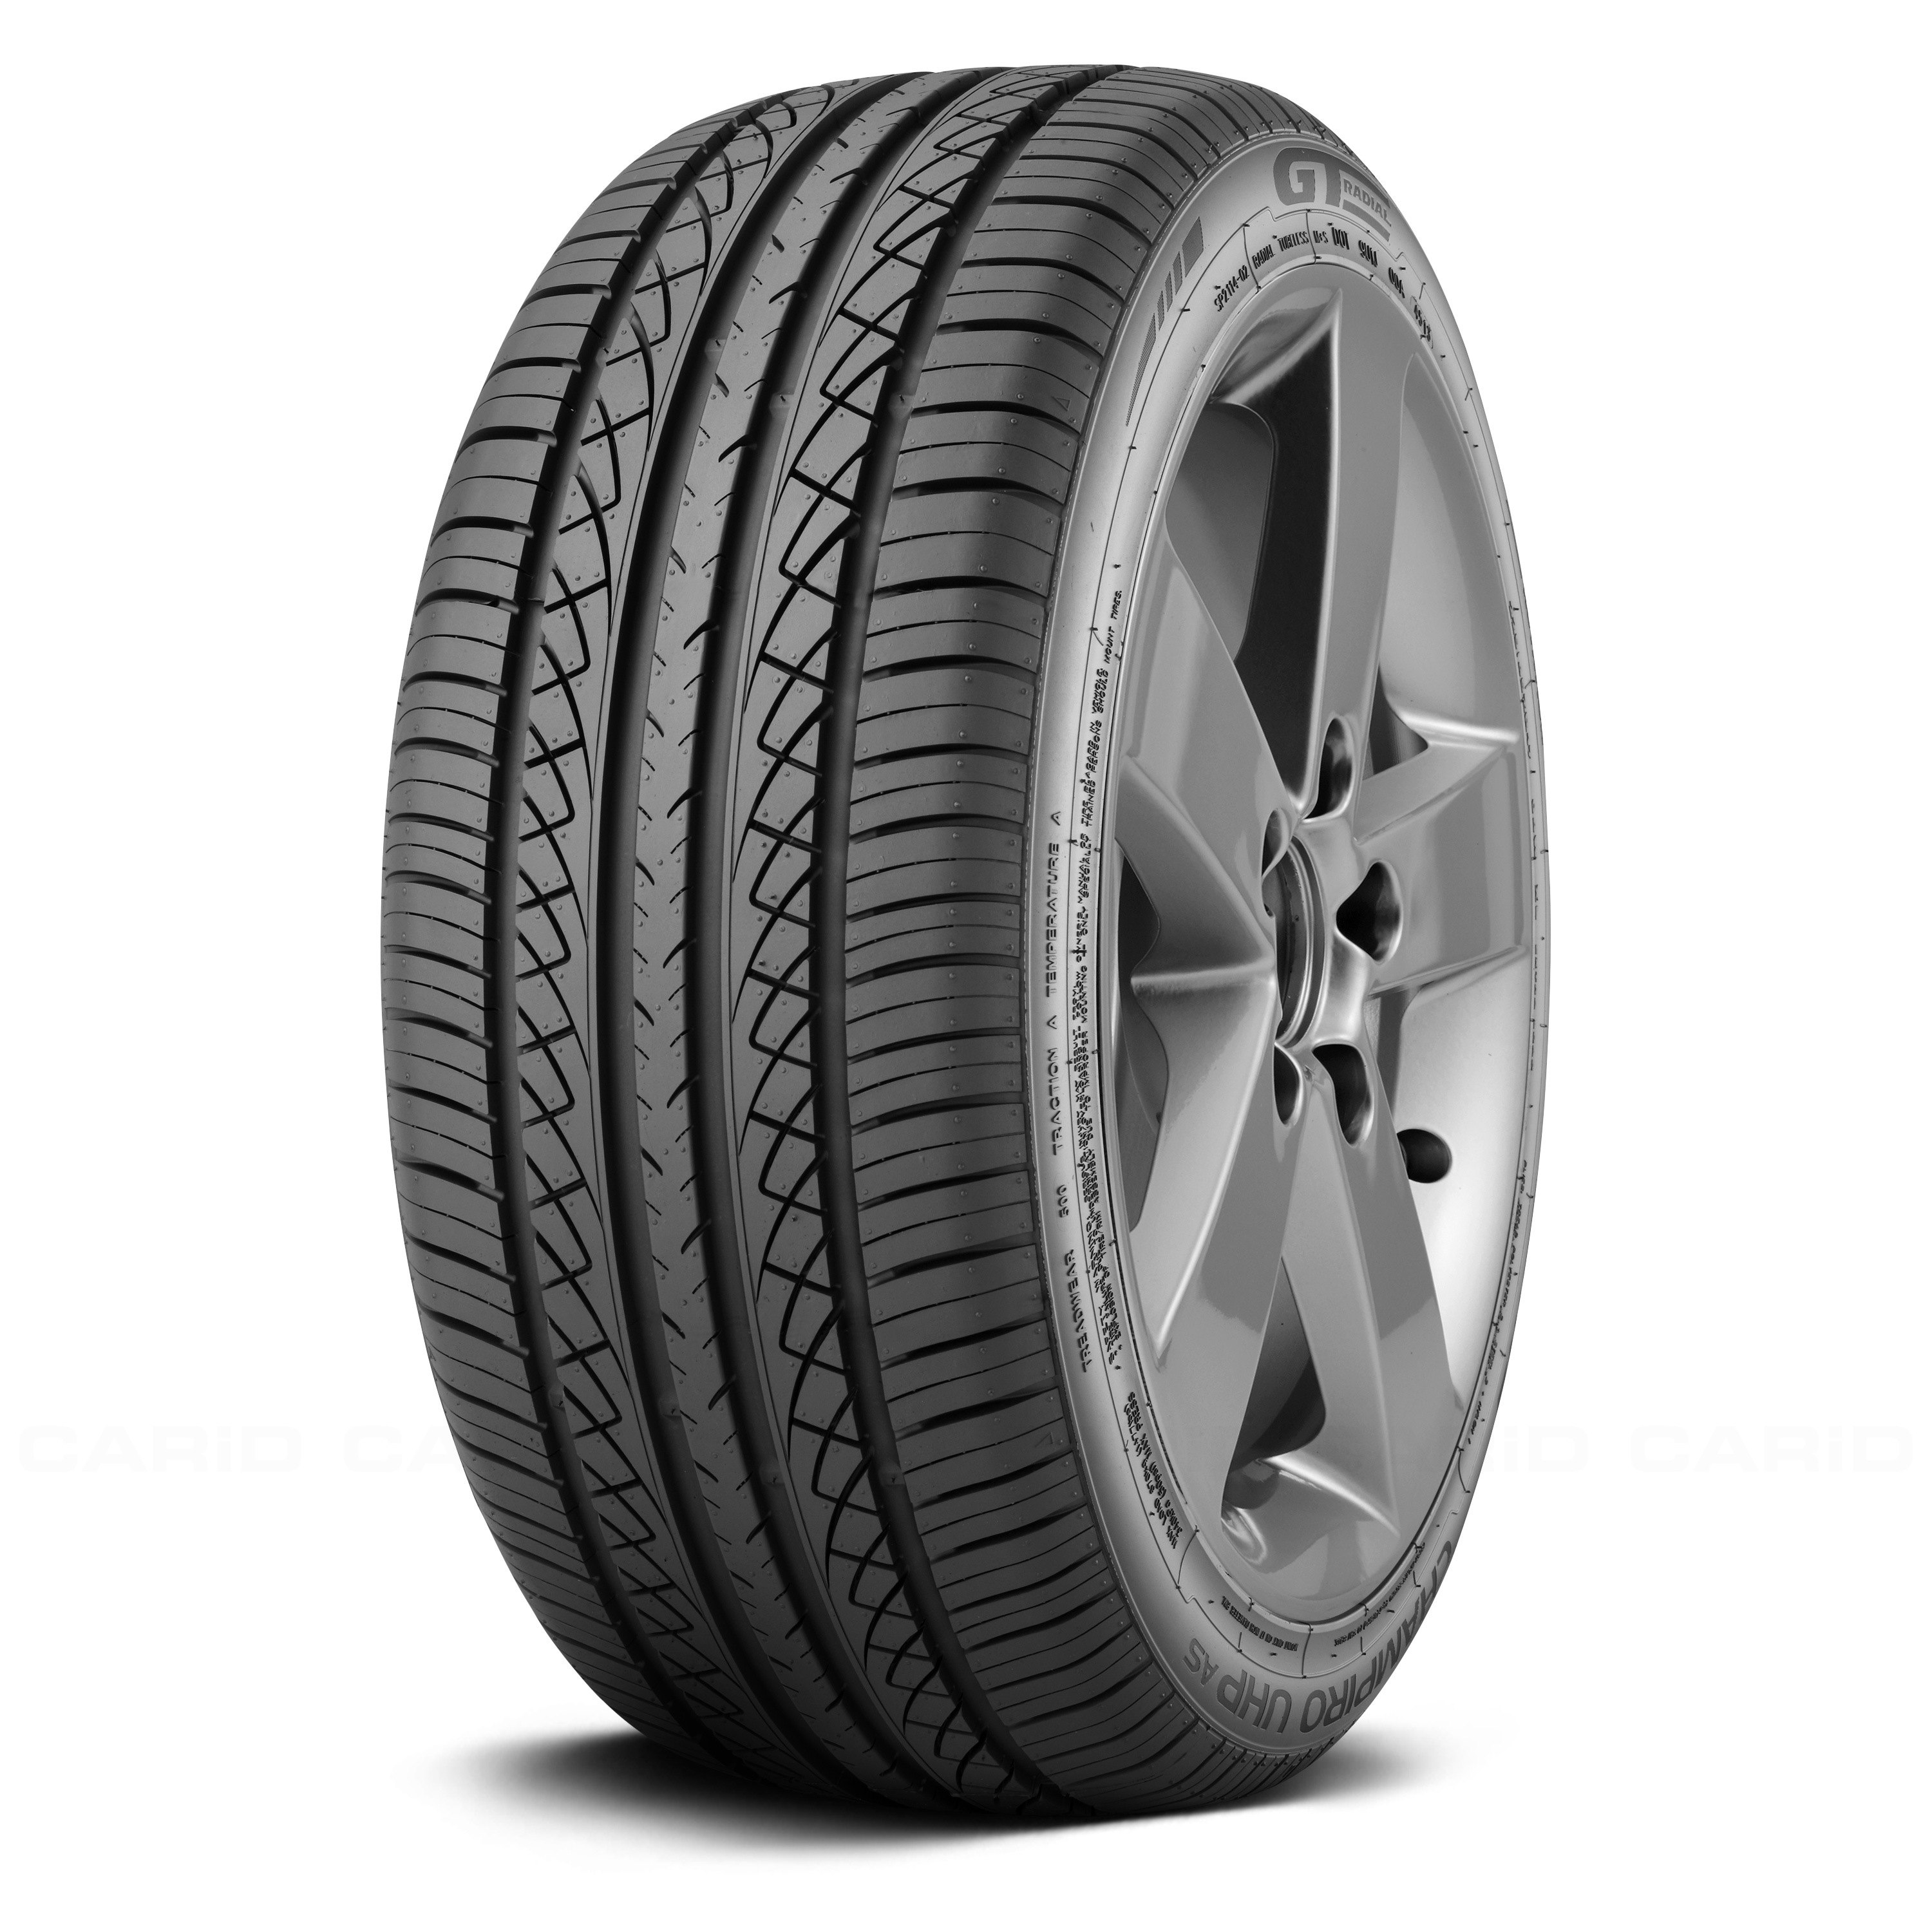 Gt Radial Tires >> Gt Radial As037 Champiro Uhp As 205 50r17 W